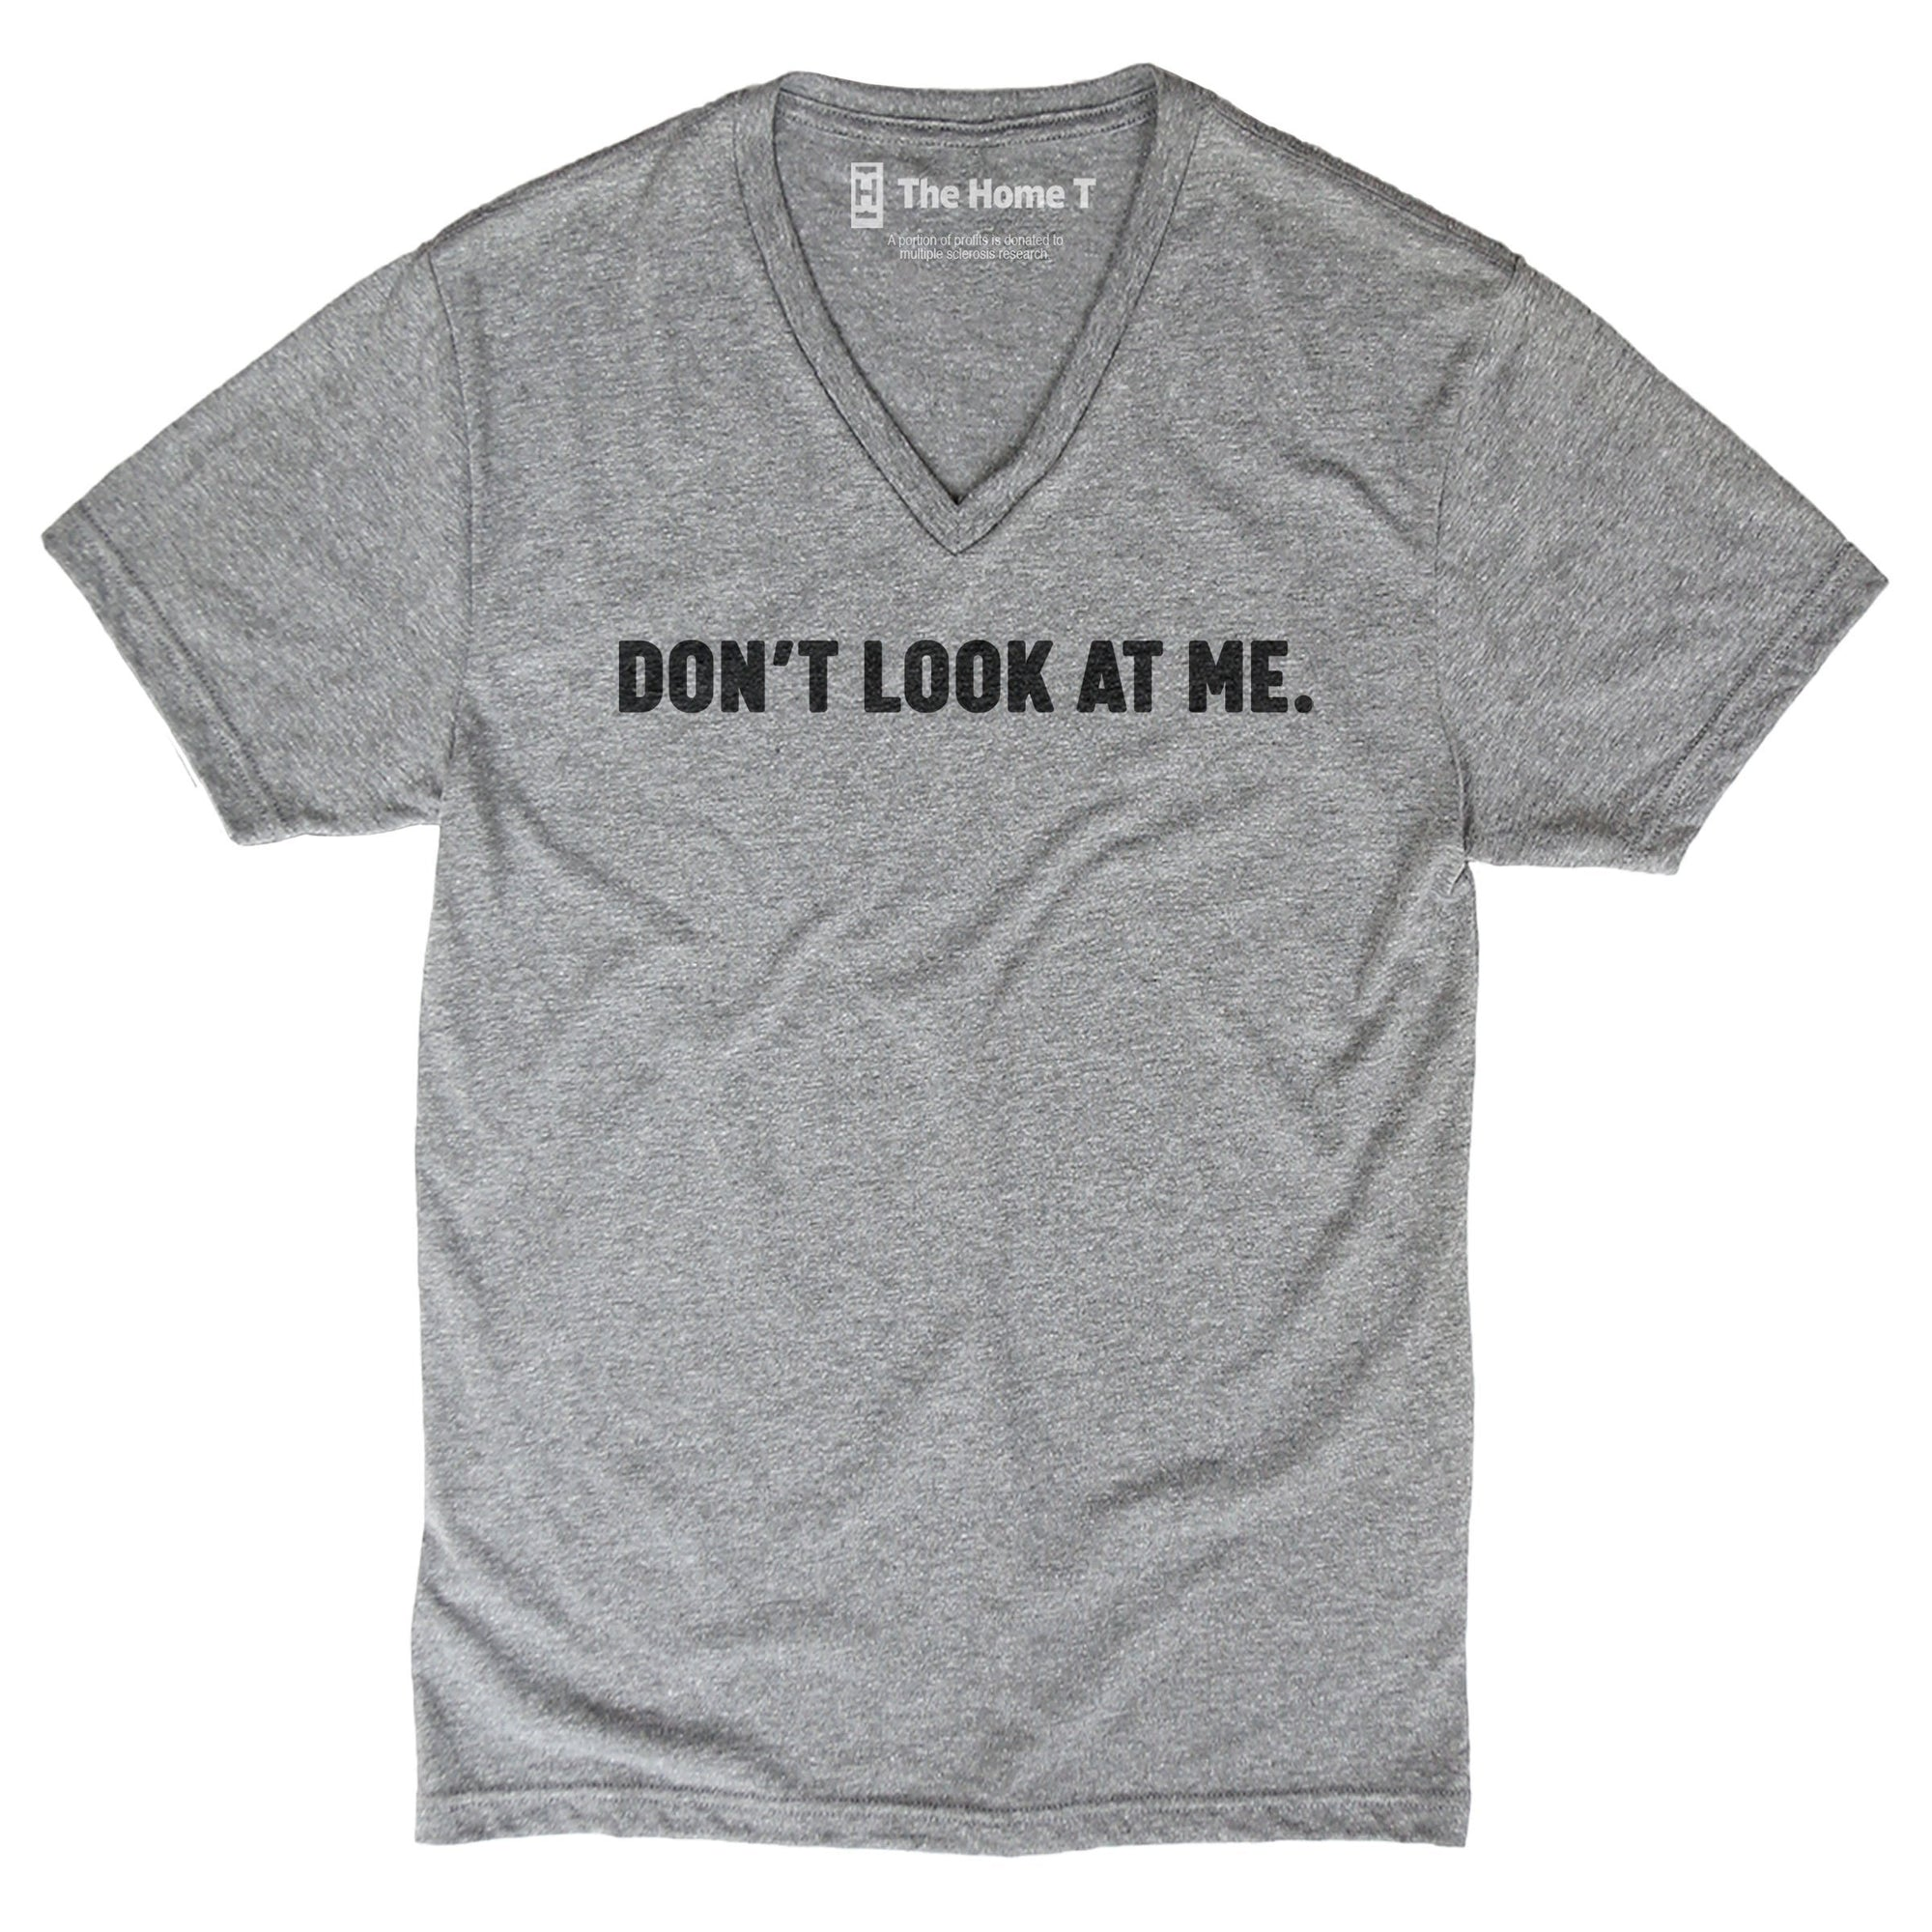 Don't look at me athletic grey crewneck